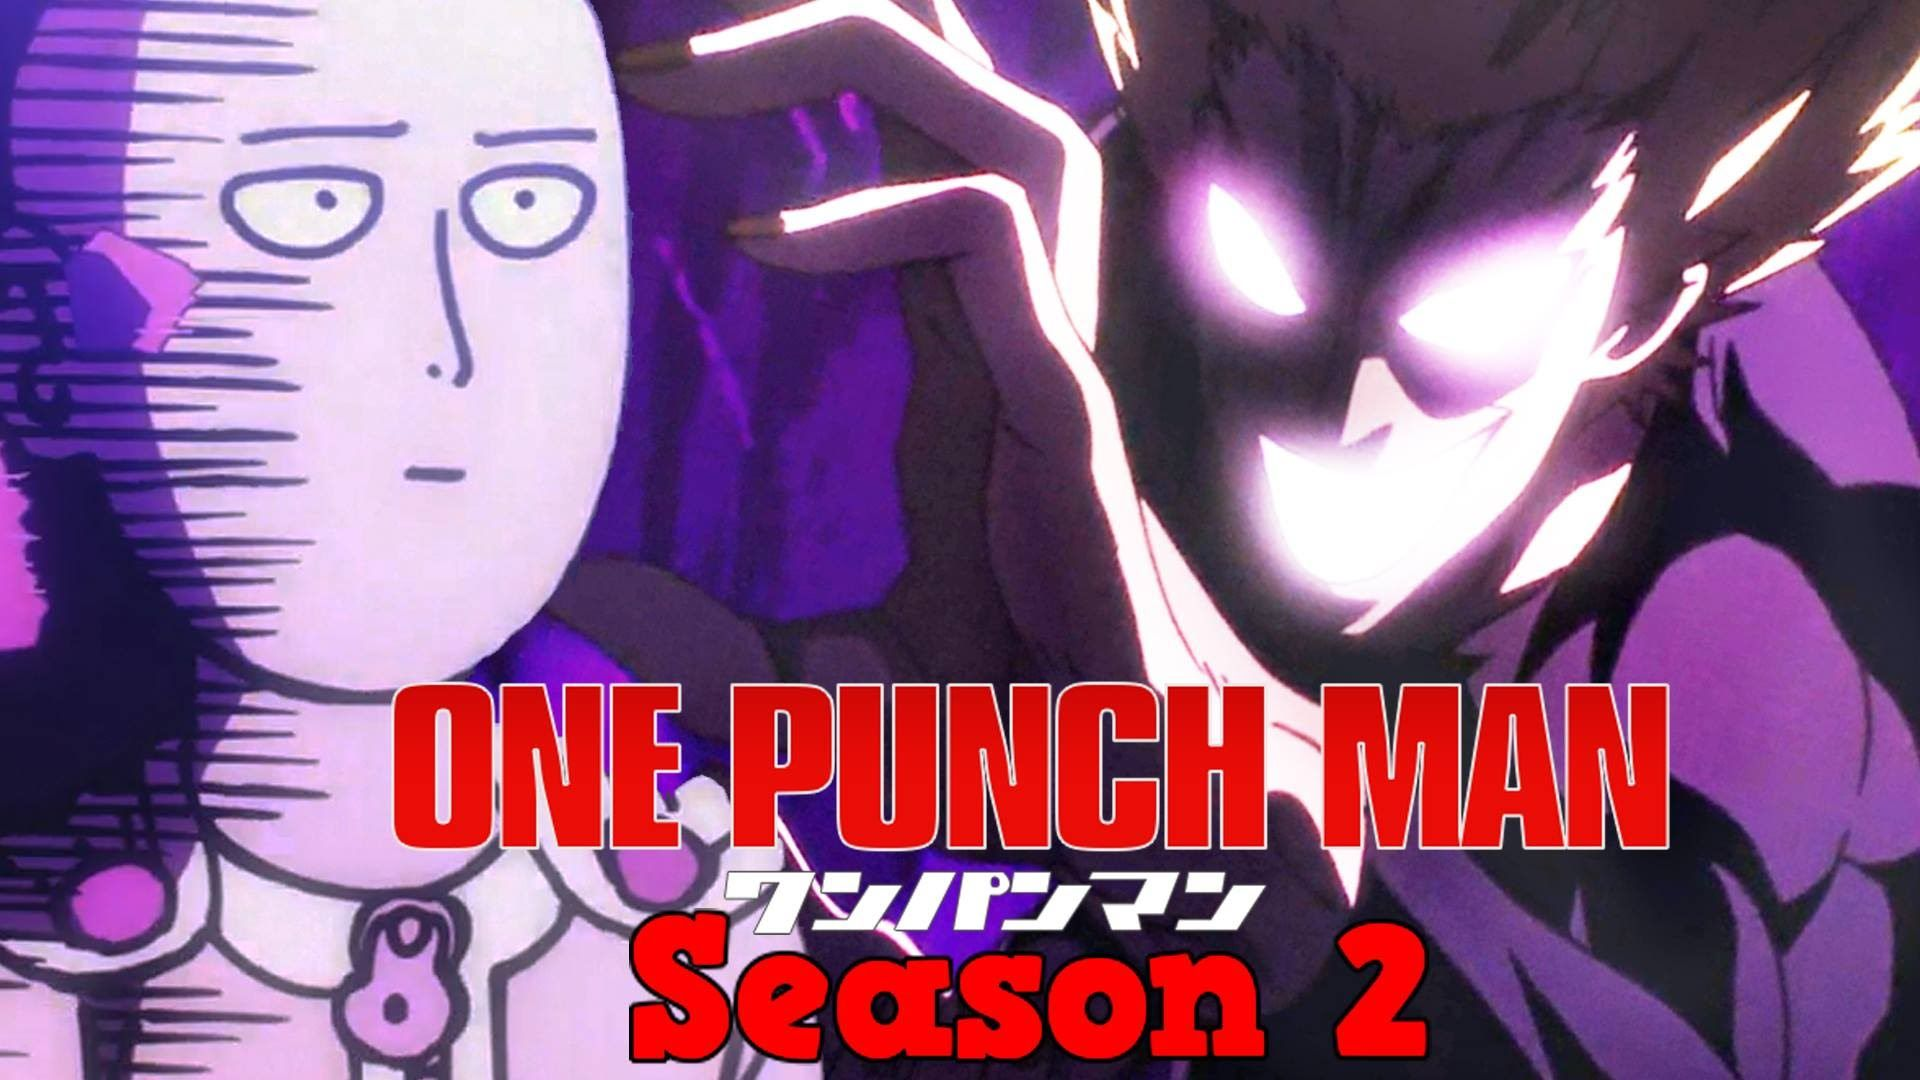 Man one episode indonesia punch 13 subtitle Nonton One